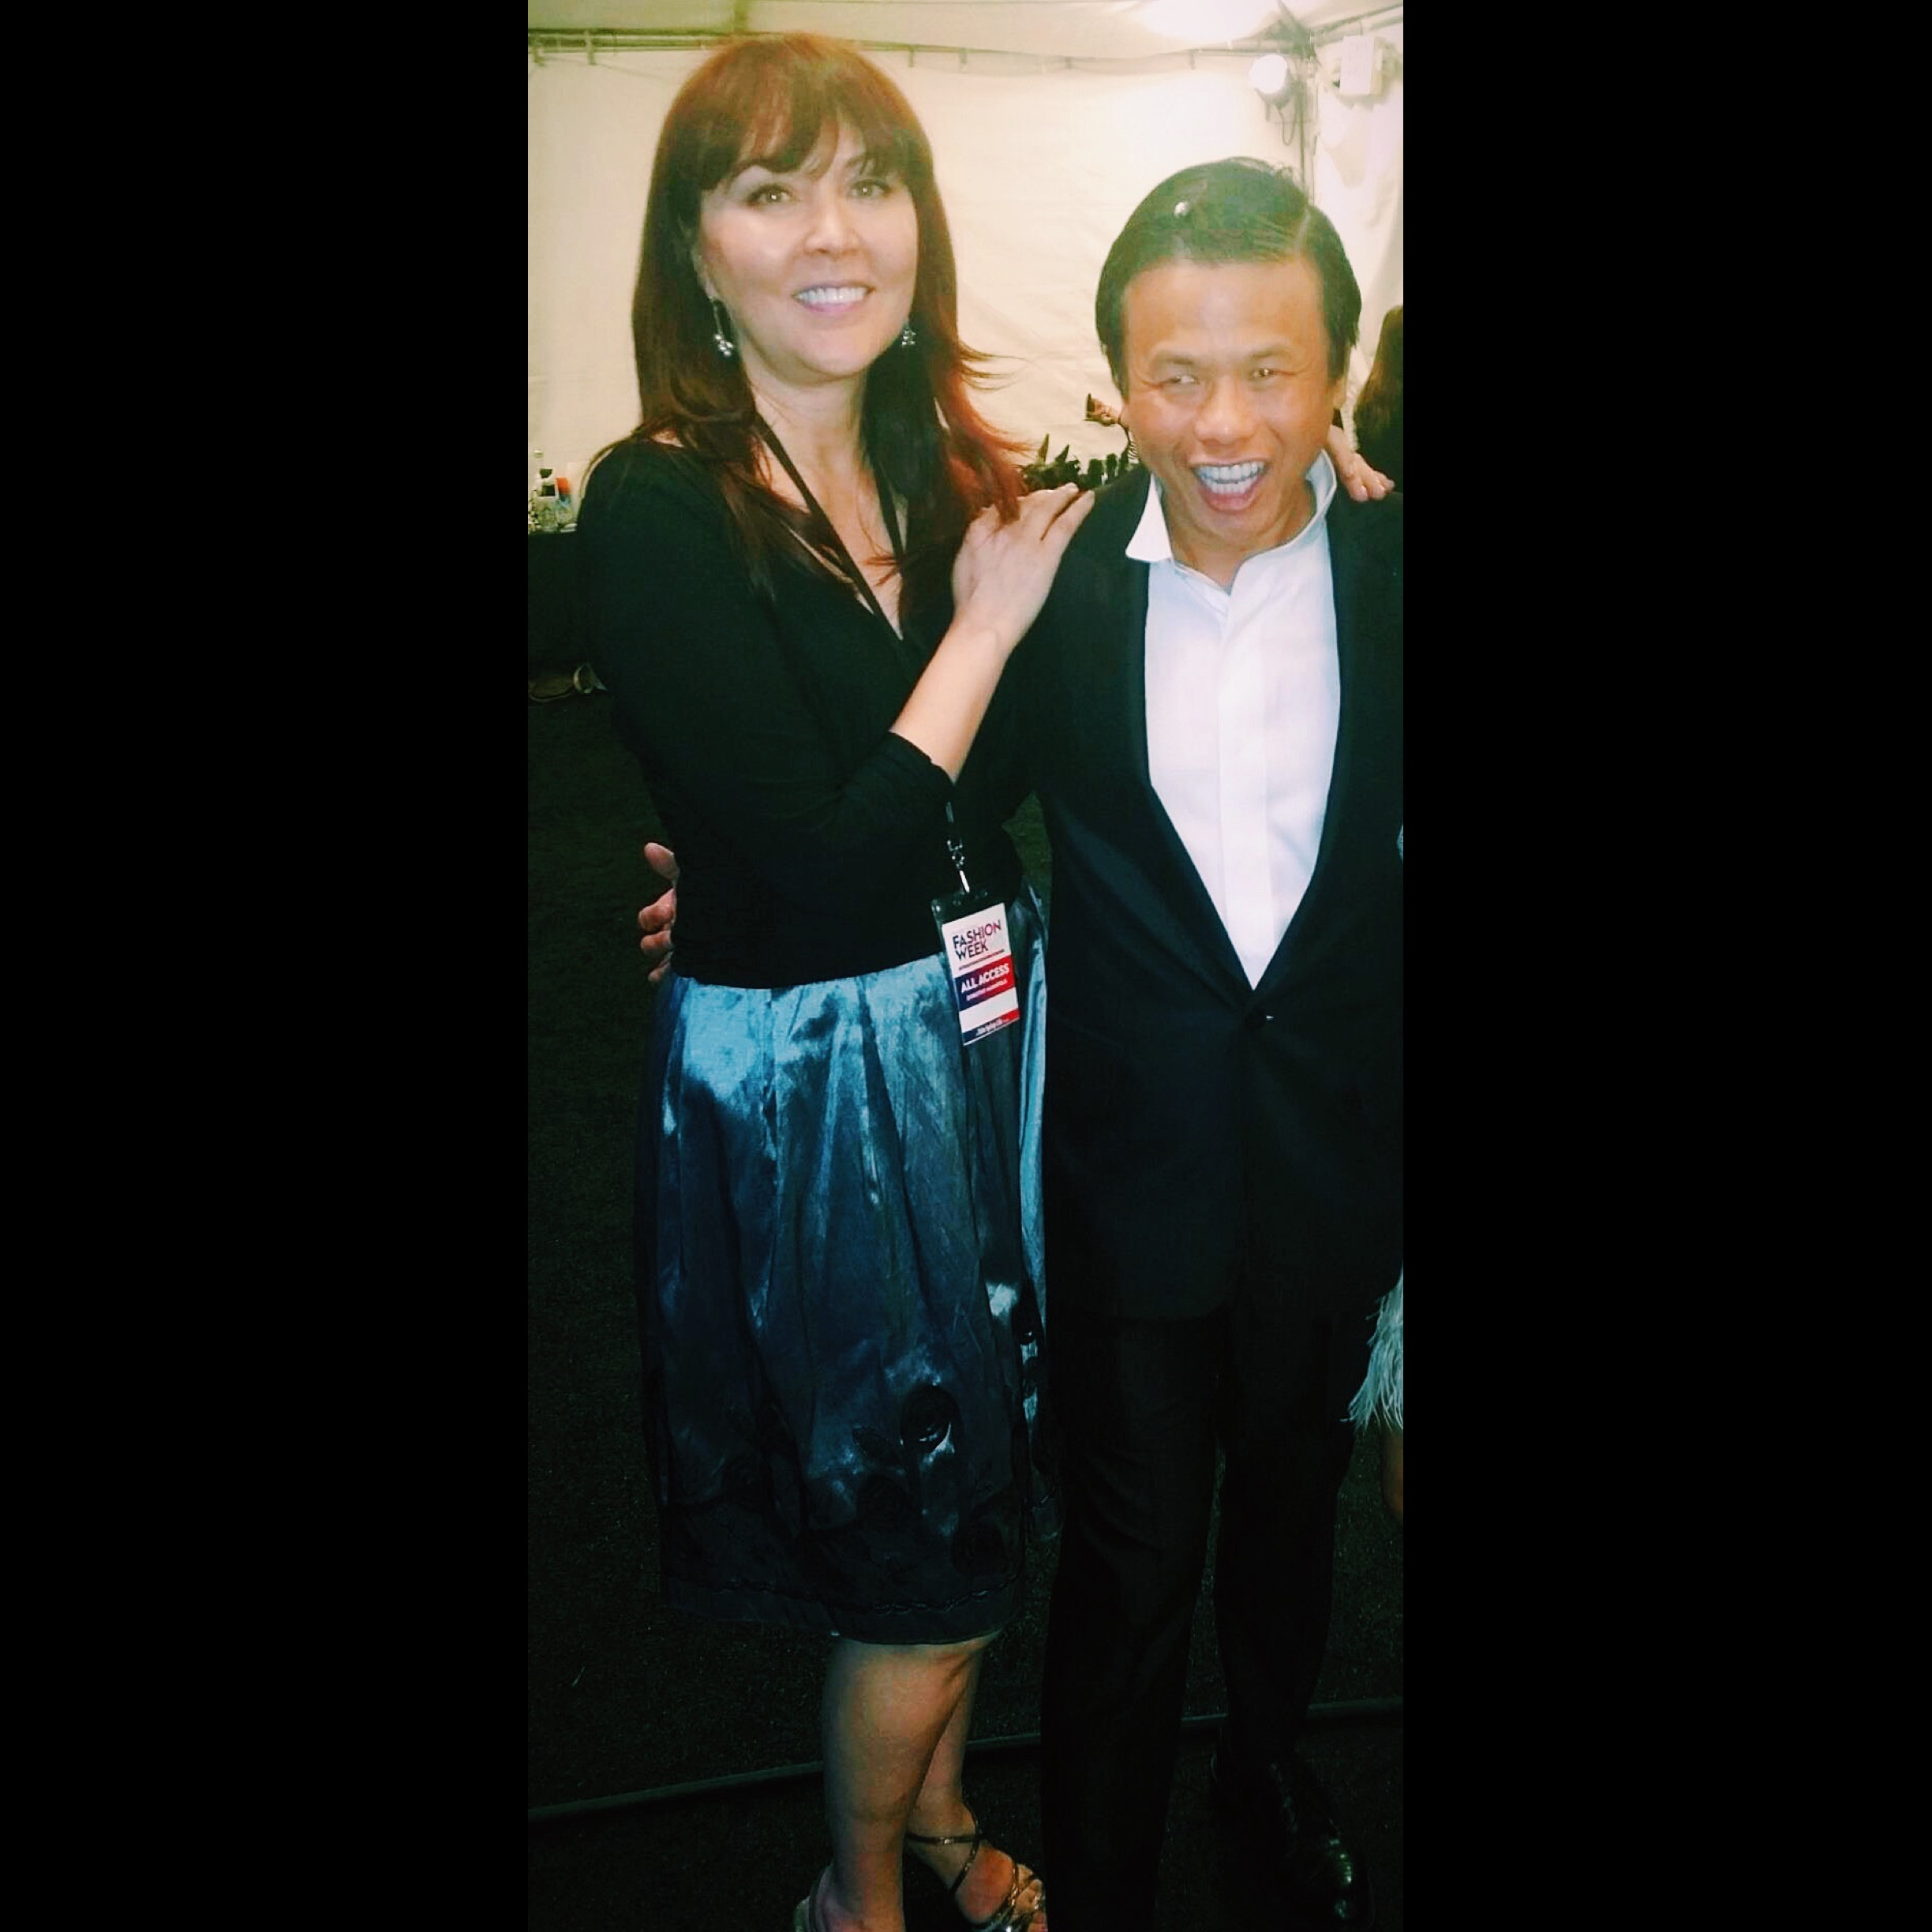 Our CEO Dorothy & Designer Zang Toi